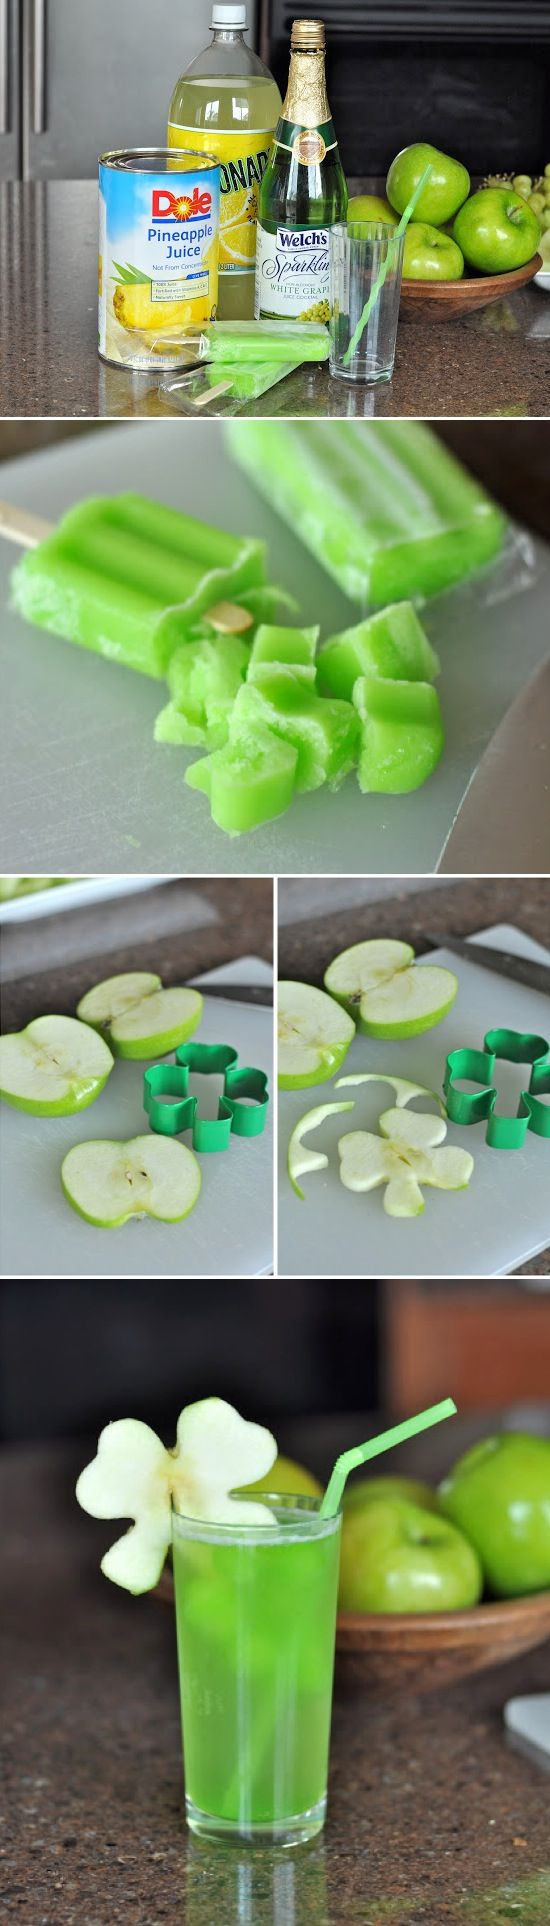 Cute! I like the apple/shamrock idea.